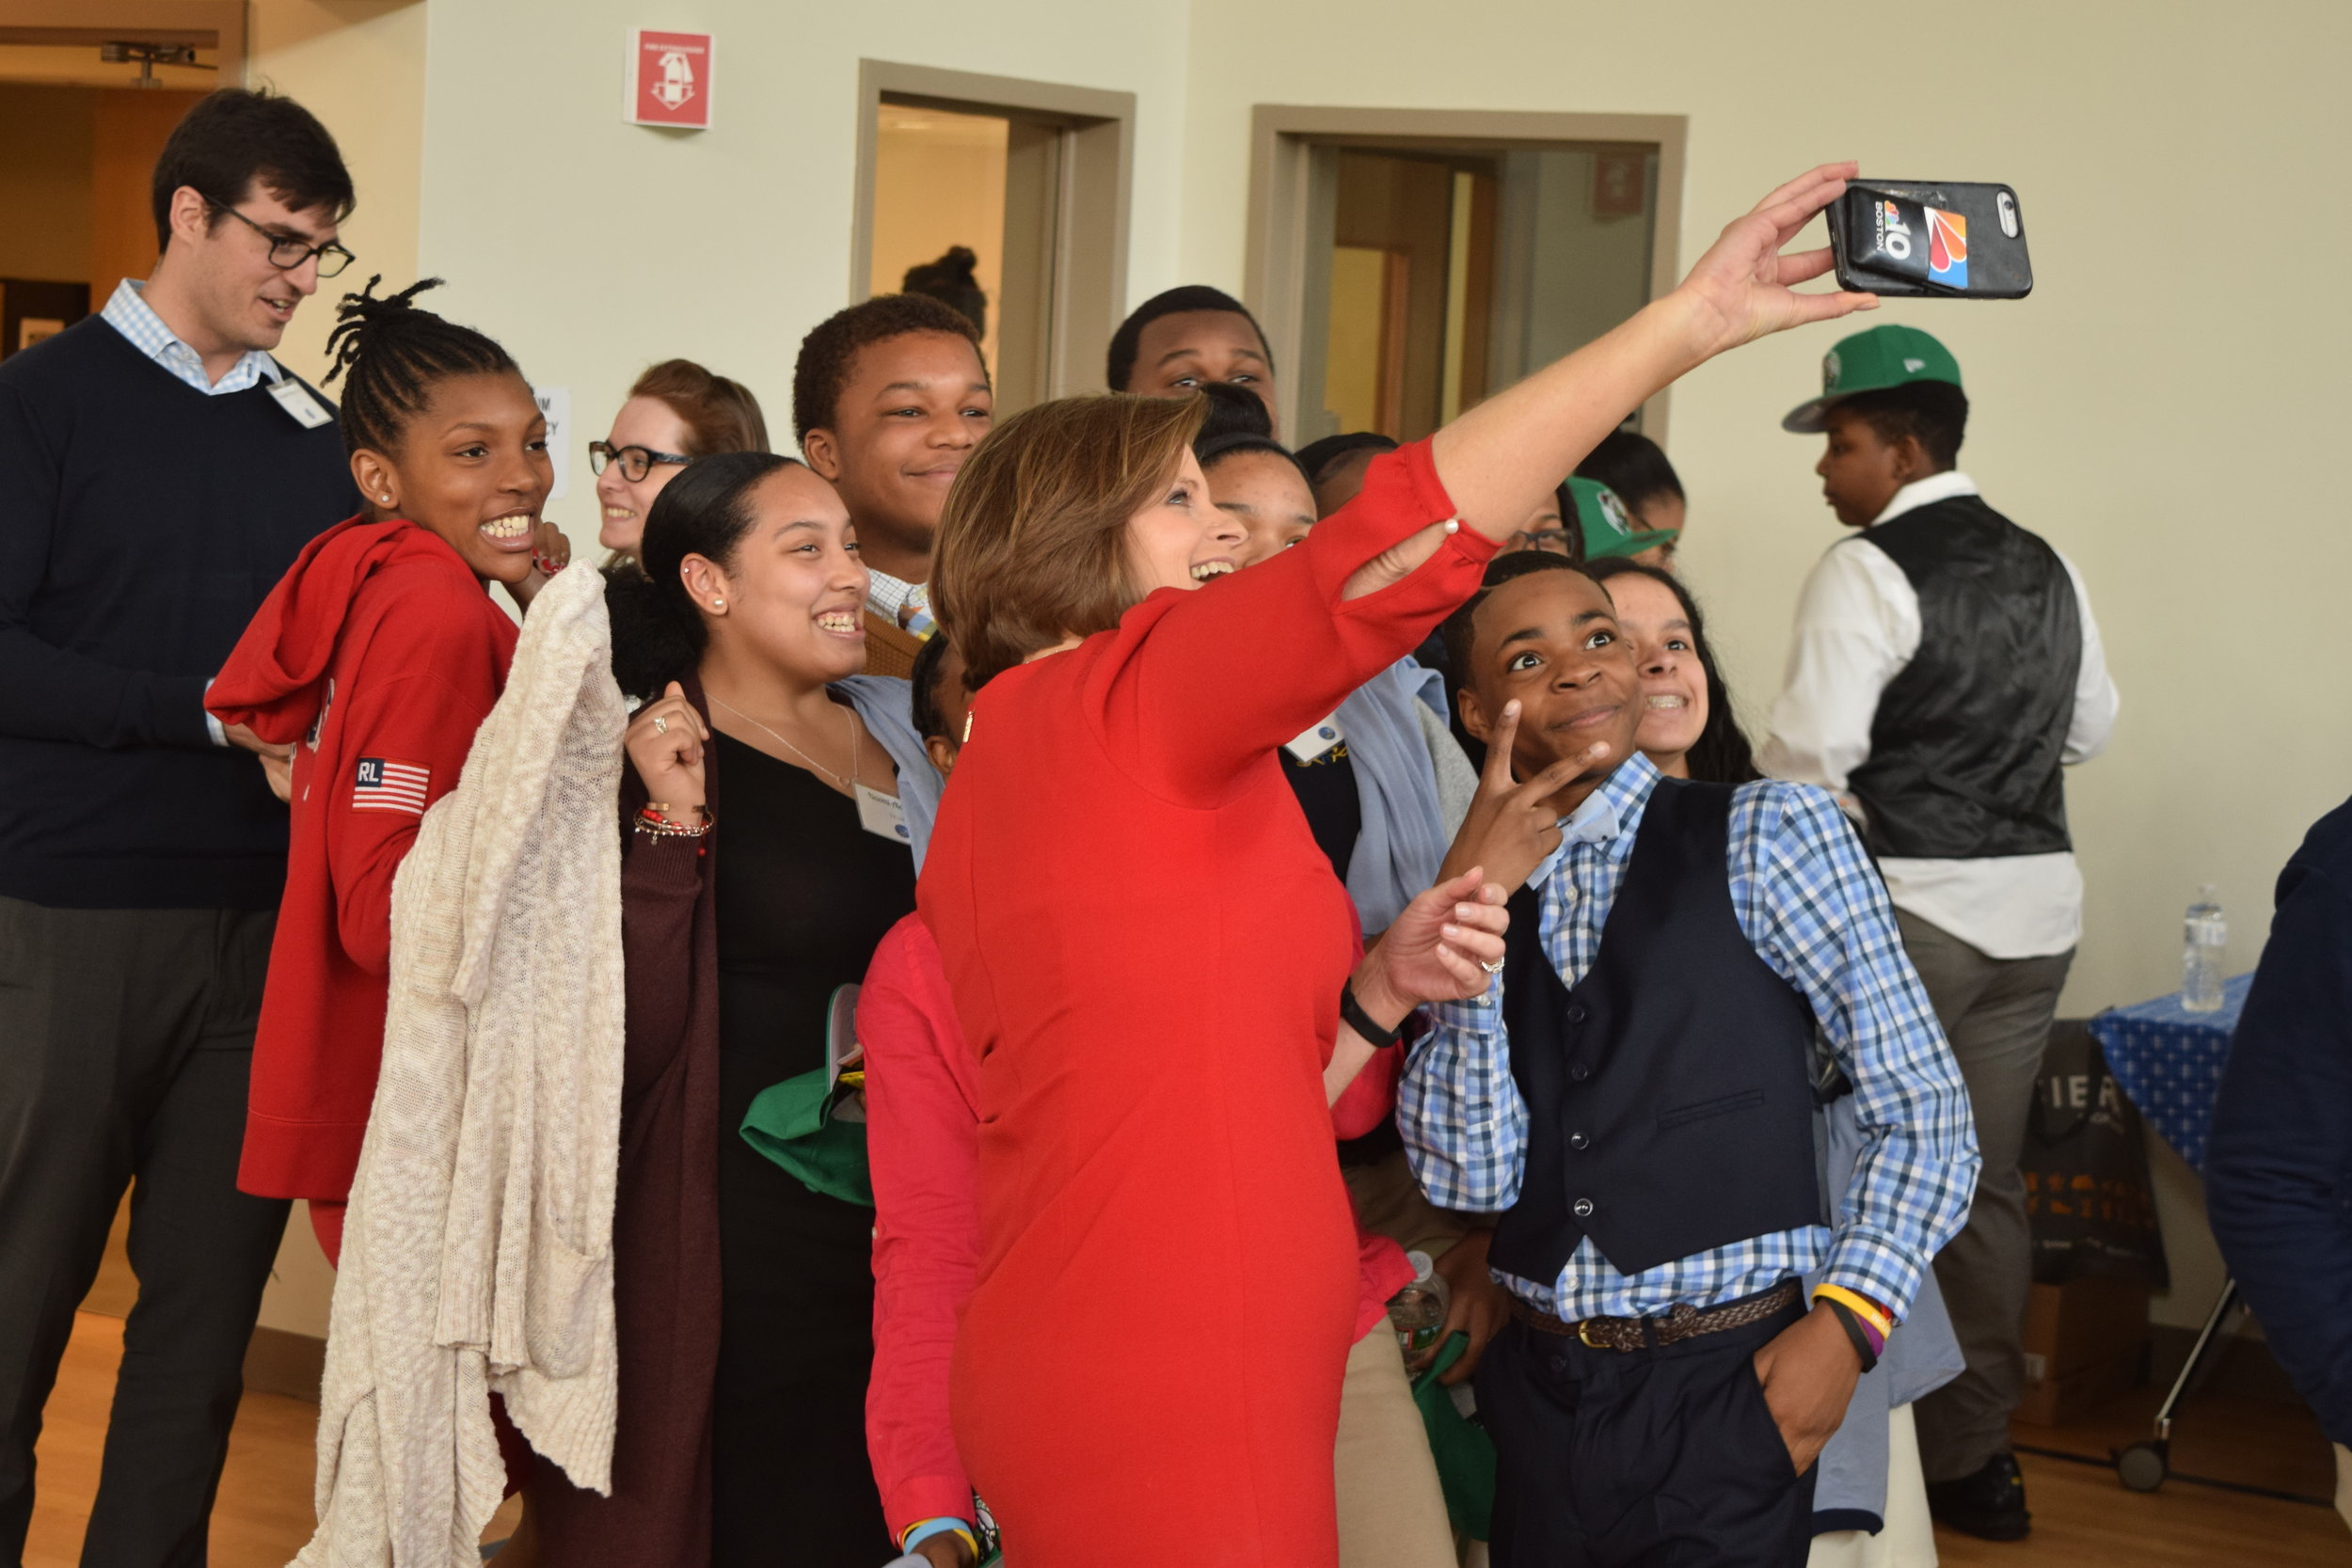 Aly Donnelly taking a selfie with the students